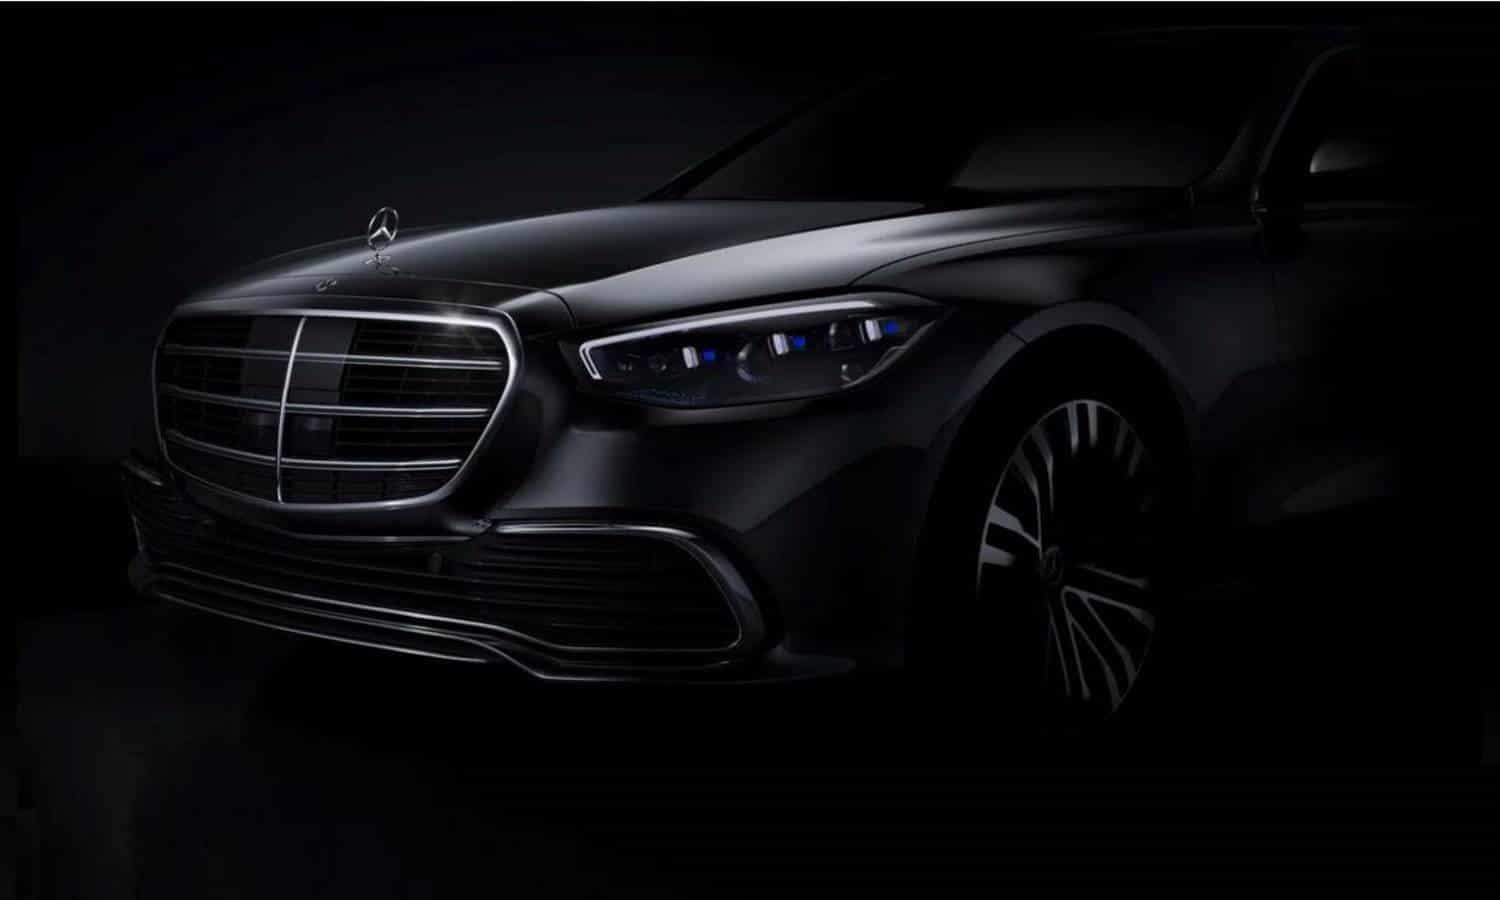 Mercedes-Benz Clase S W223 front teaser